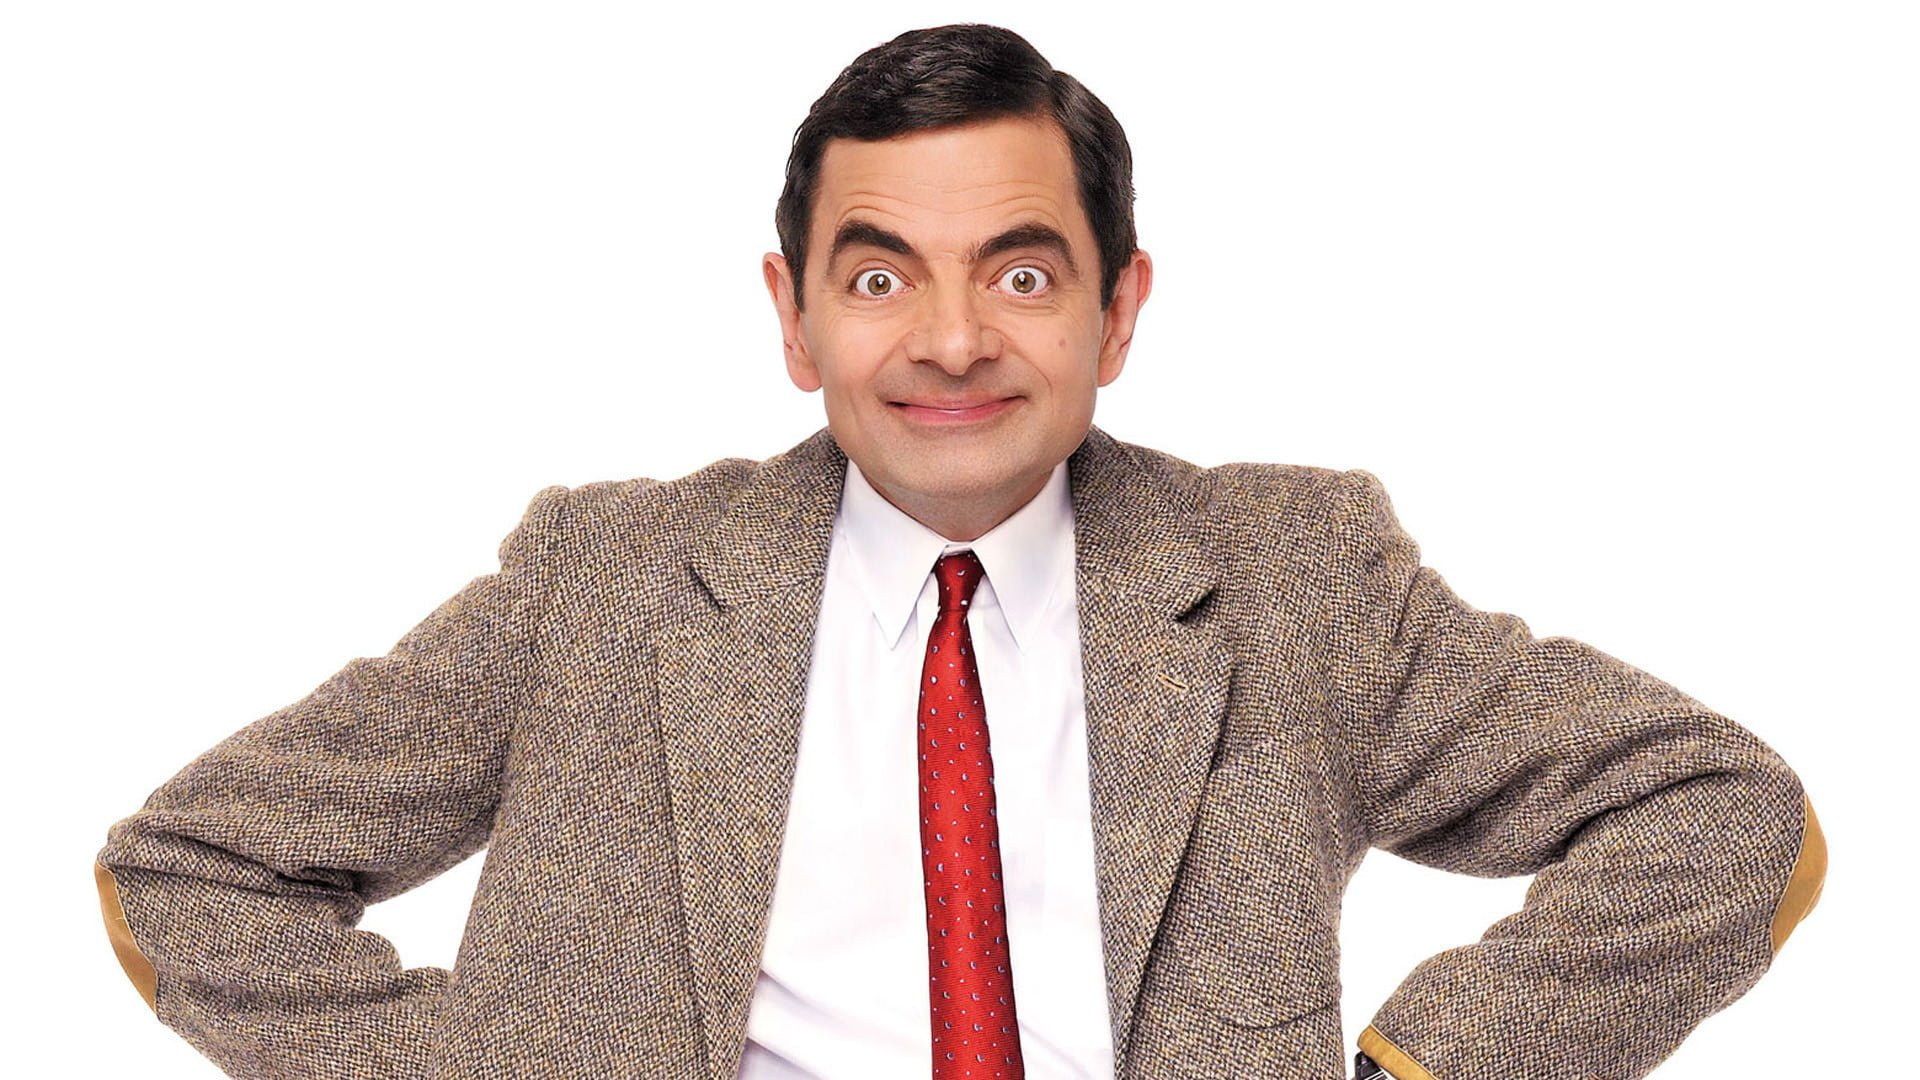 atkinson-says-goodbye-to-beloved-character-mr-bean